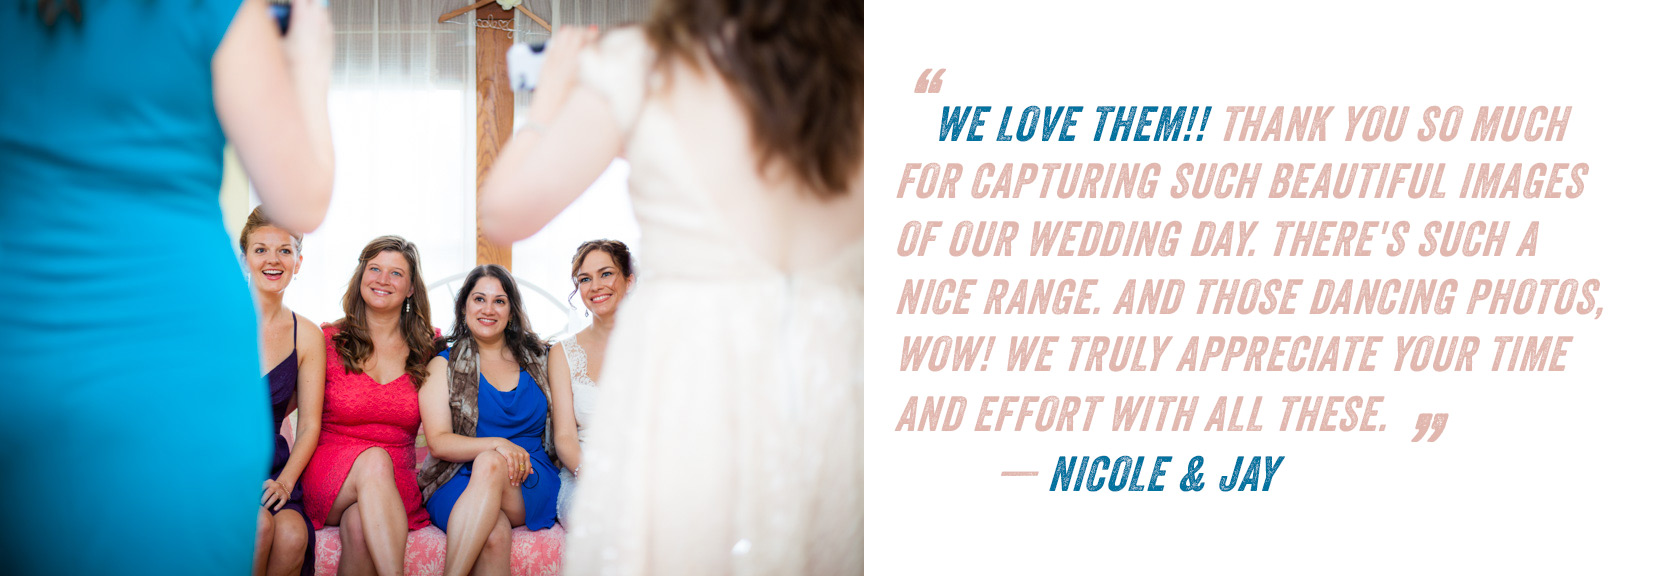 Bride and groom's positive testimonial of their amazing experience with Eve Event Photography.